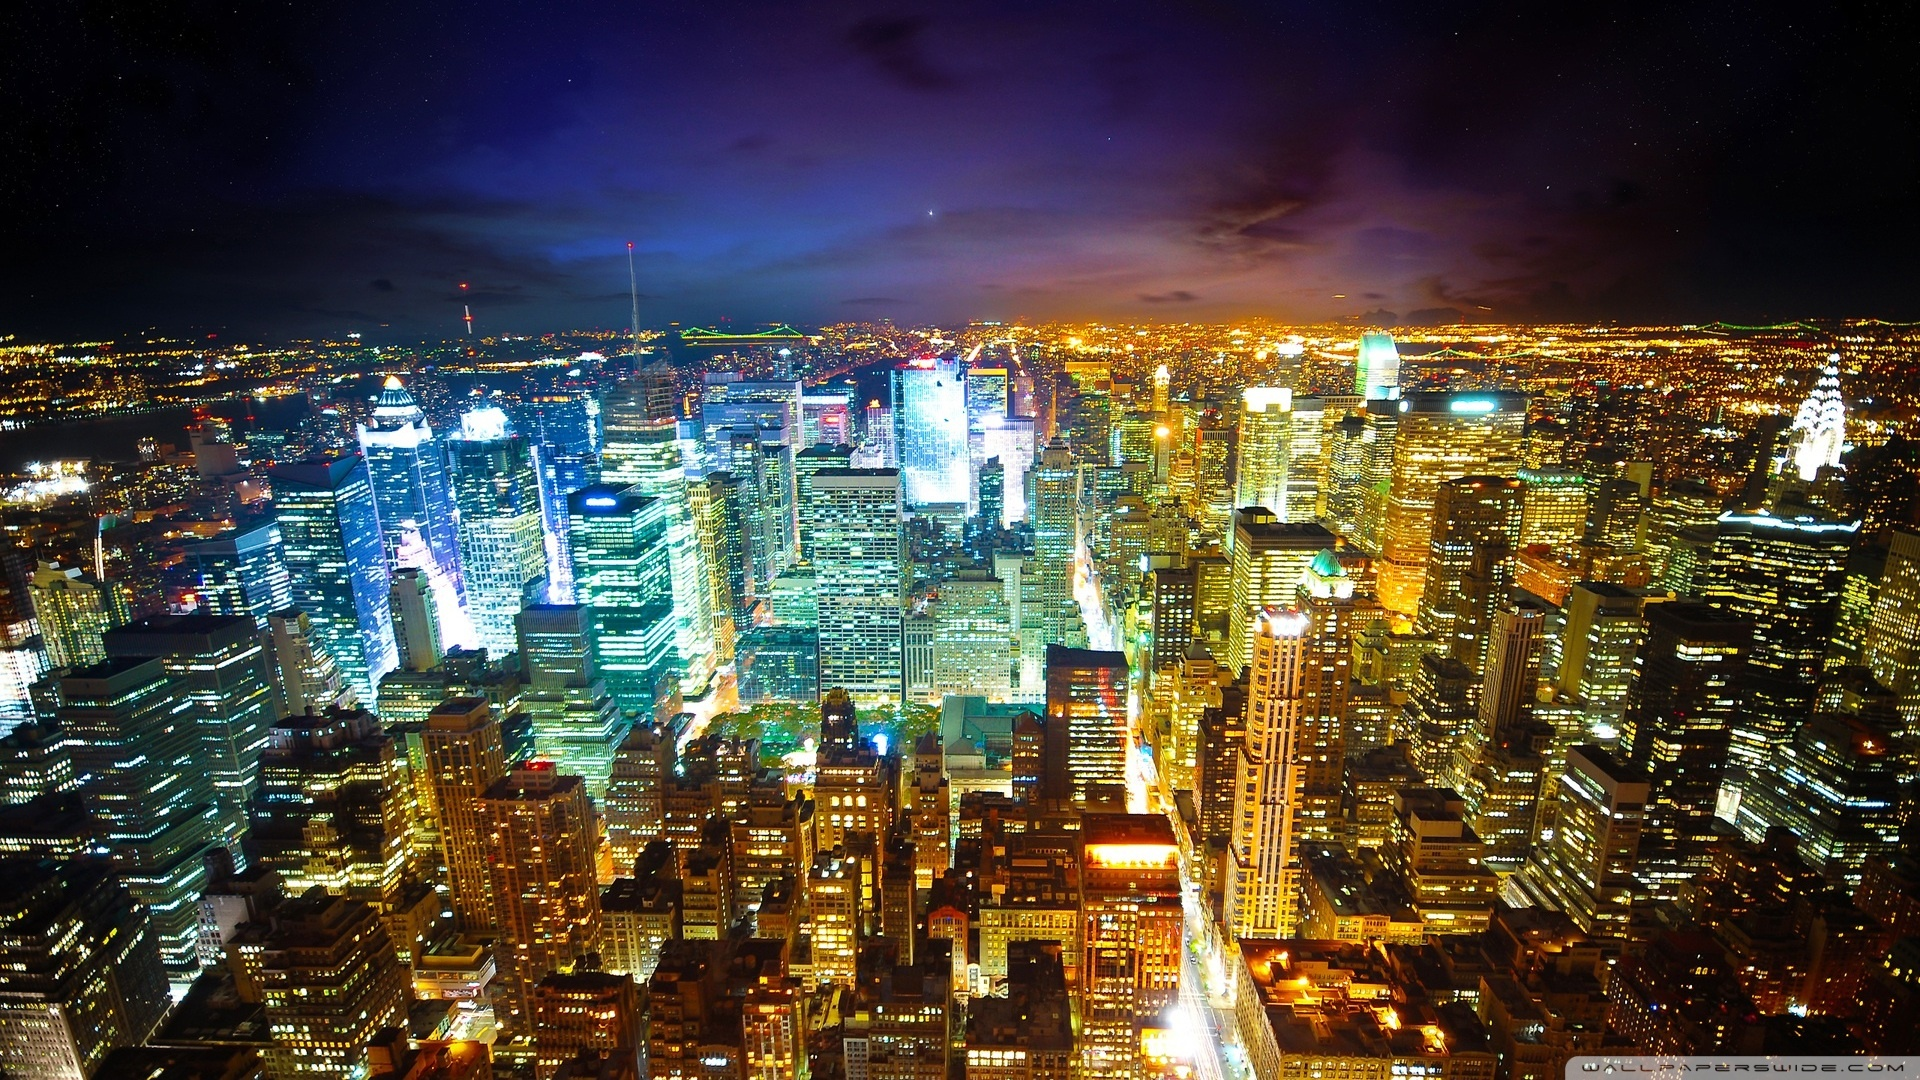 New York City At Night 2 Wallpaper 1920x1080 New York City At 1920x1080